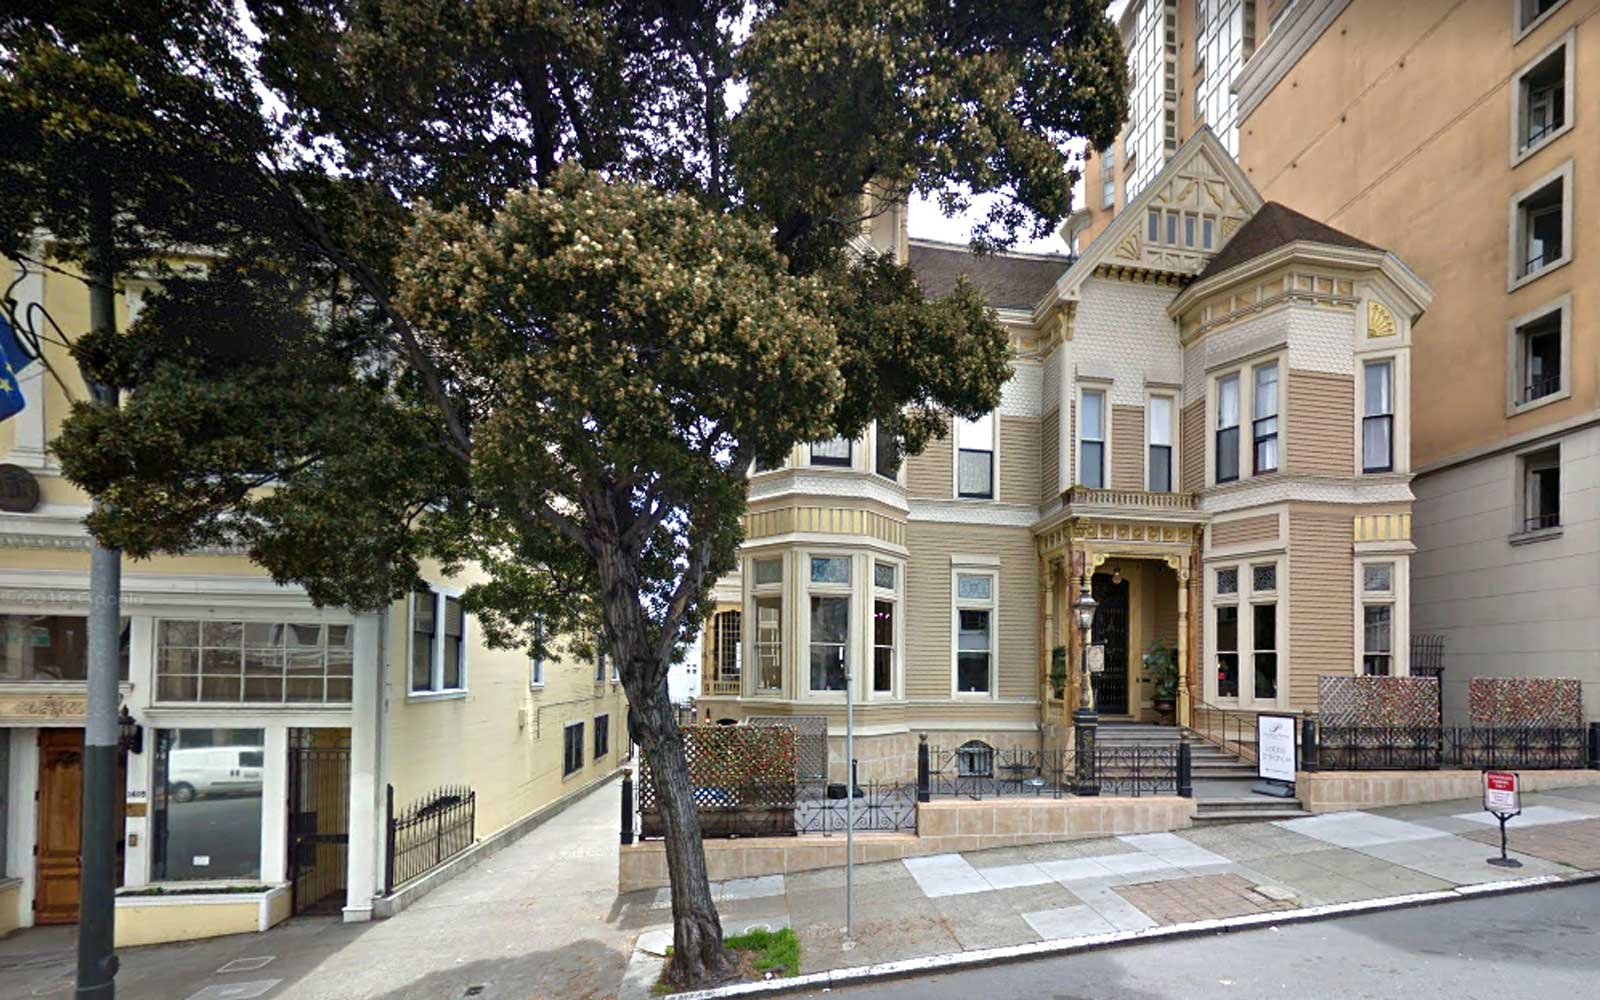 1409 Sutter St. on Google Maps Streetview